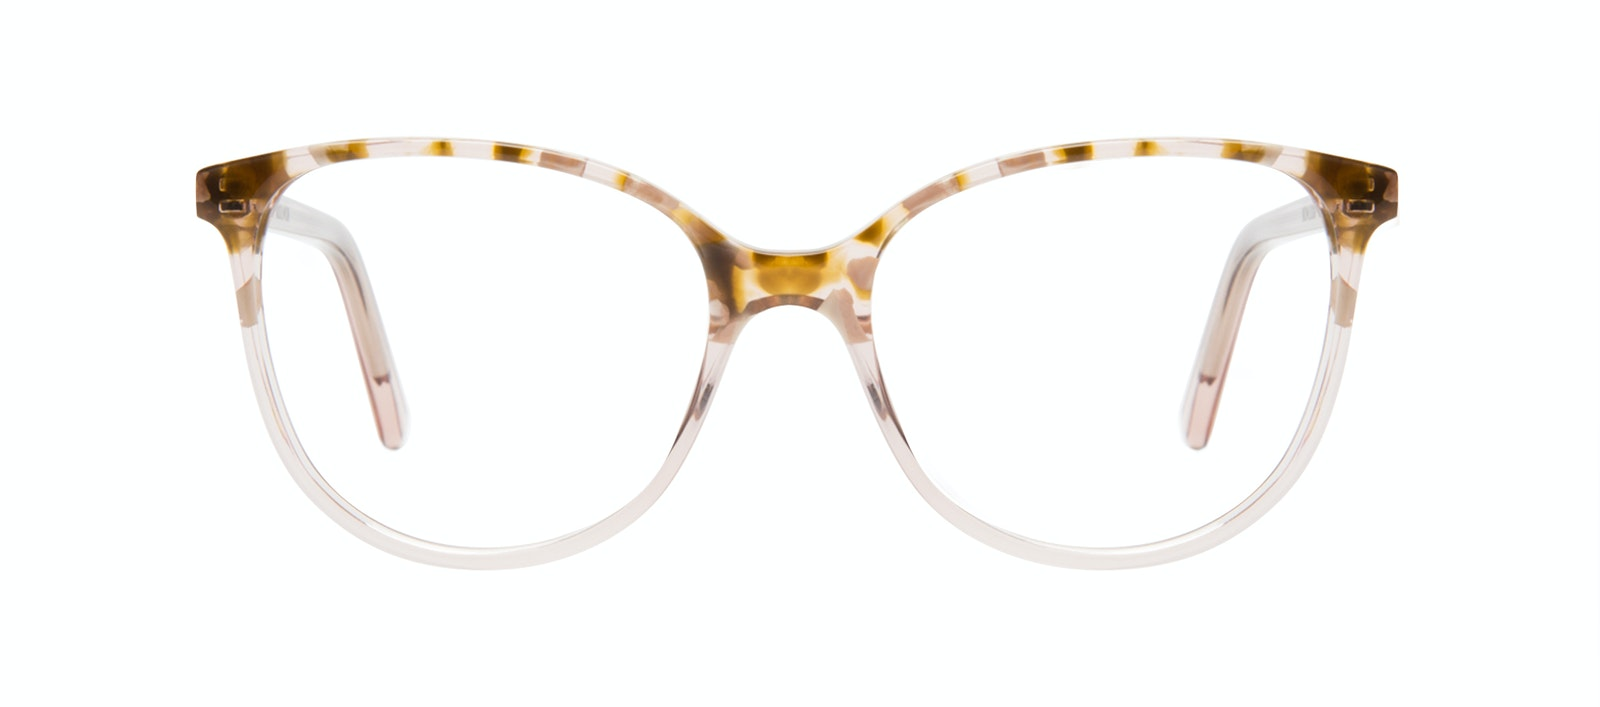 8138ad400364 Affordable Fashion Glasses Round Eyeglasses Women Imagine Petite Rose Flake  Front